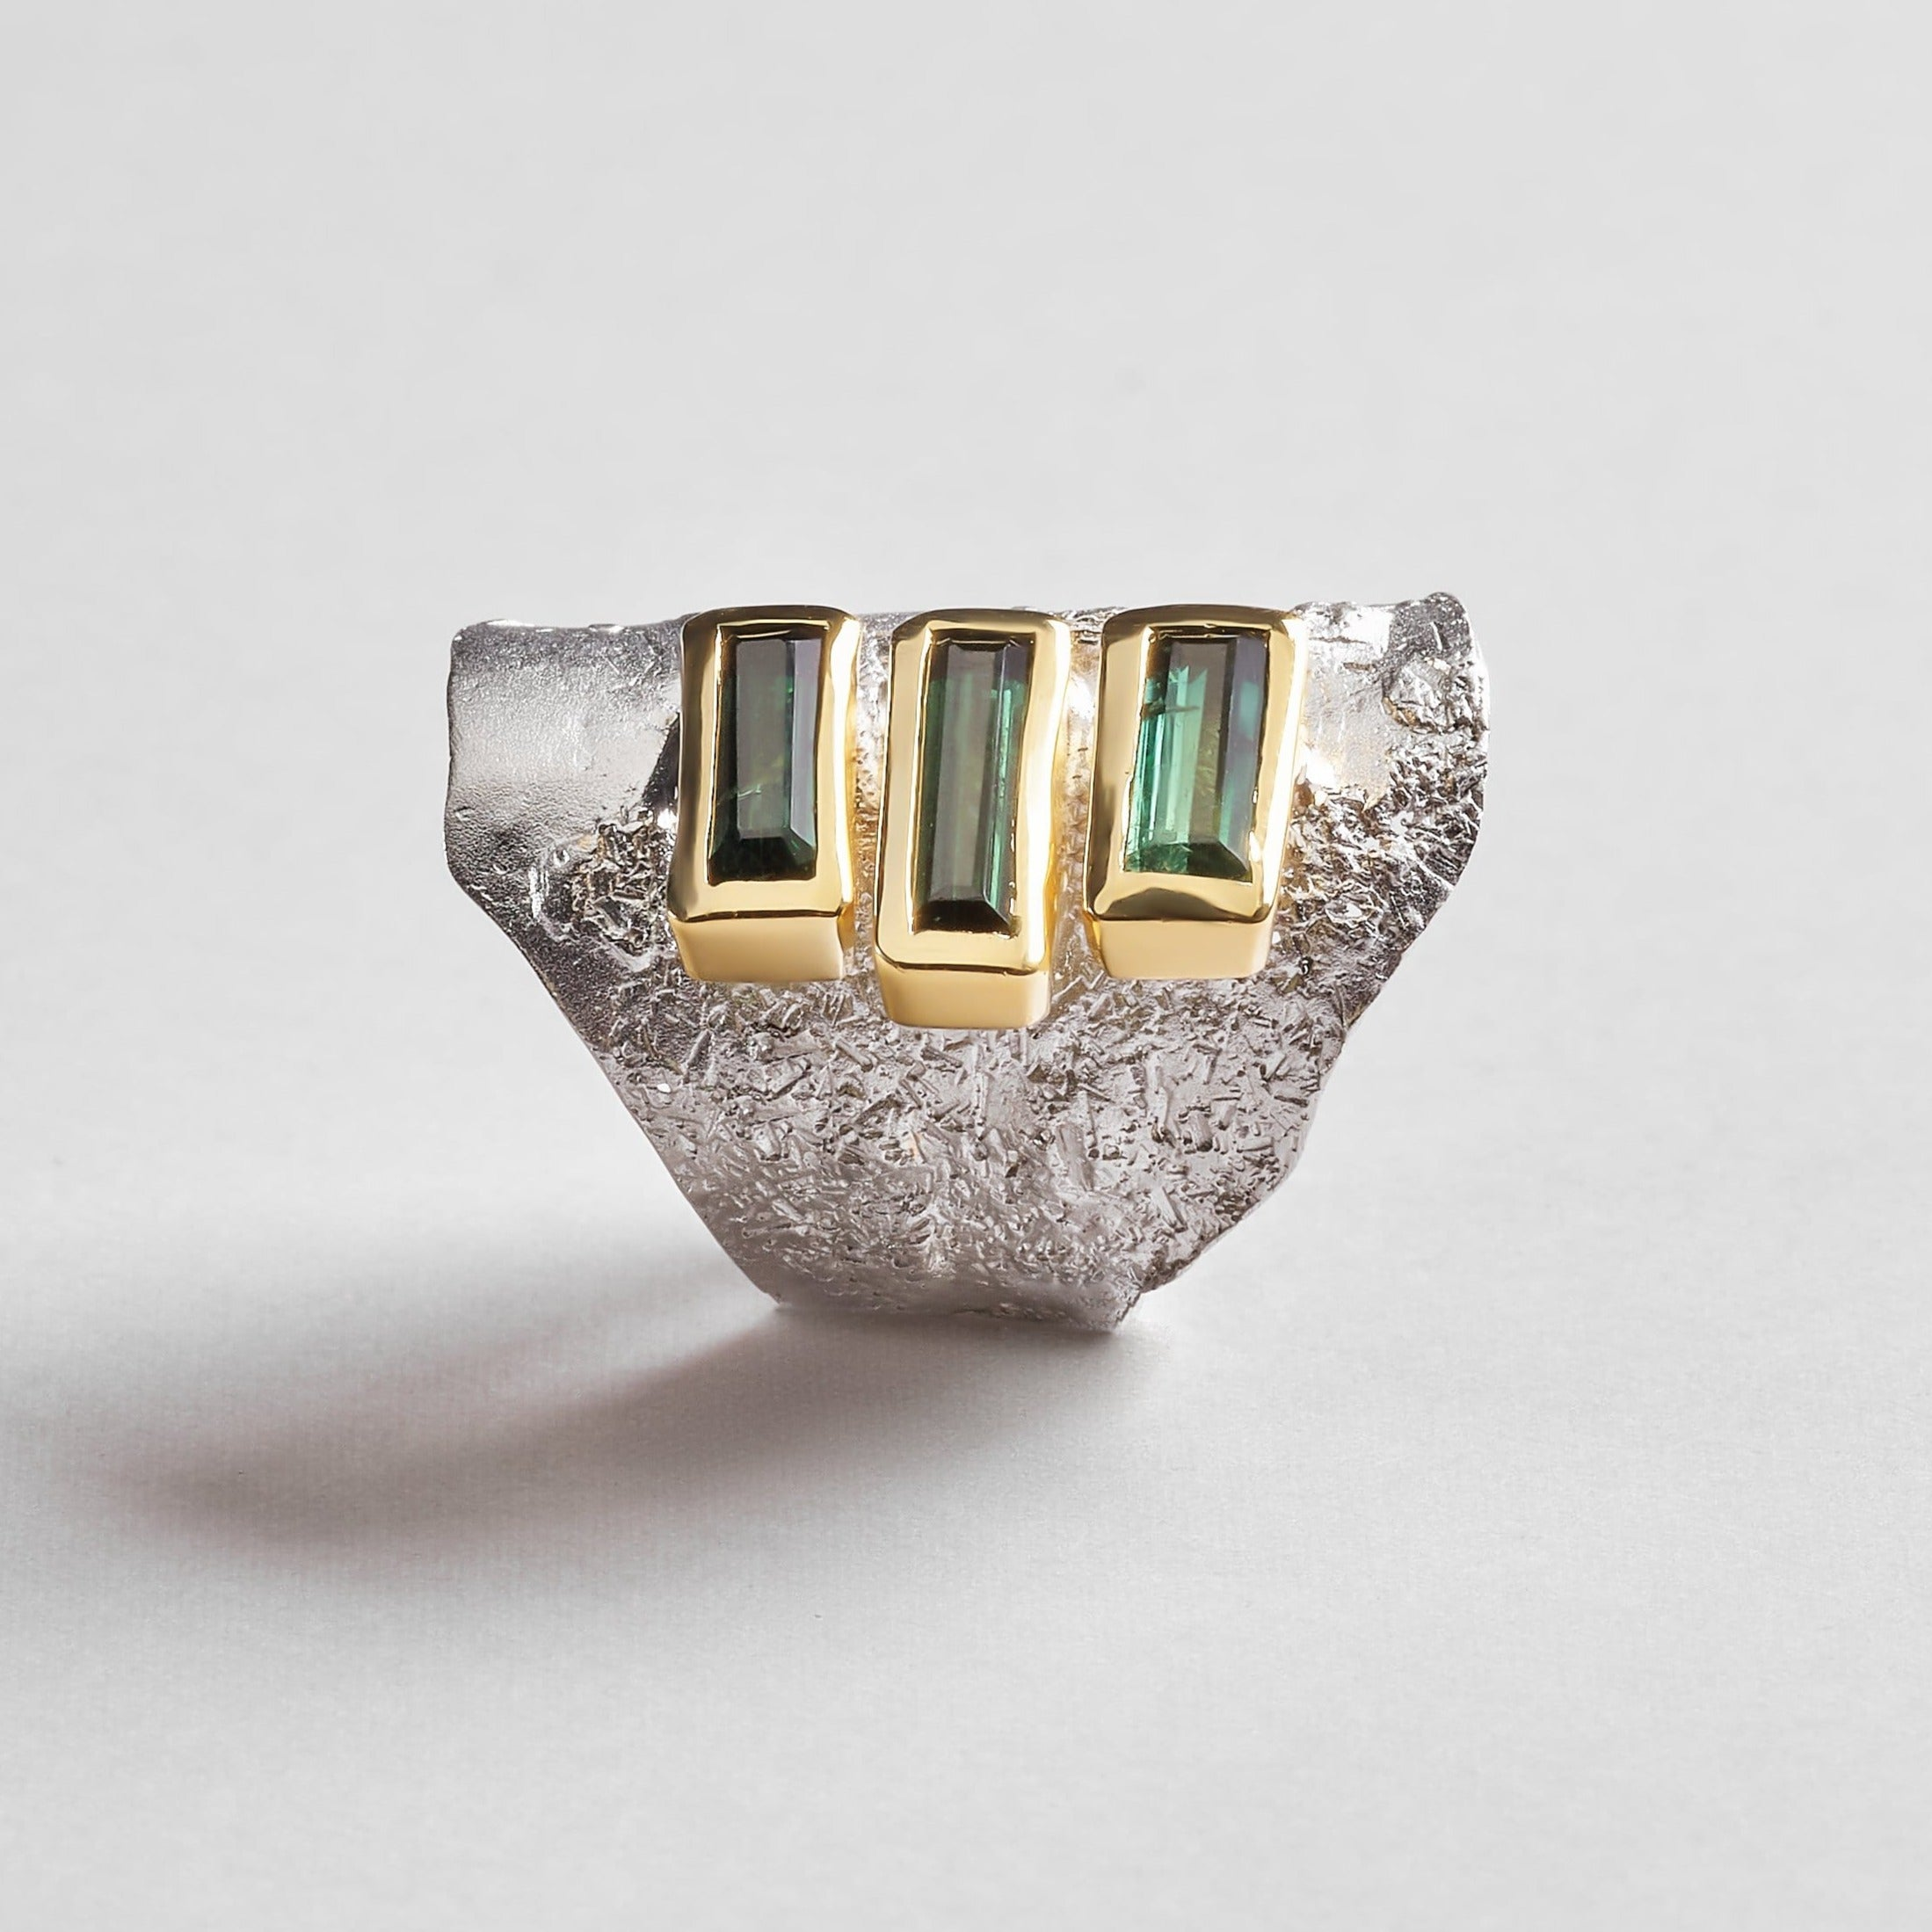 Meiden Green Tourmaline Ring